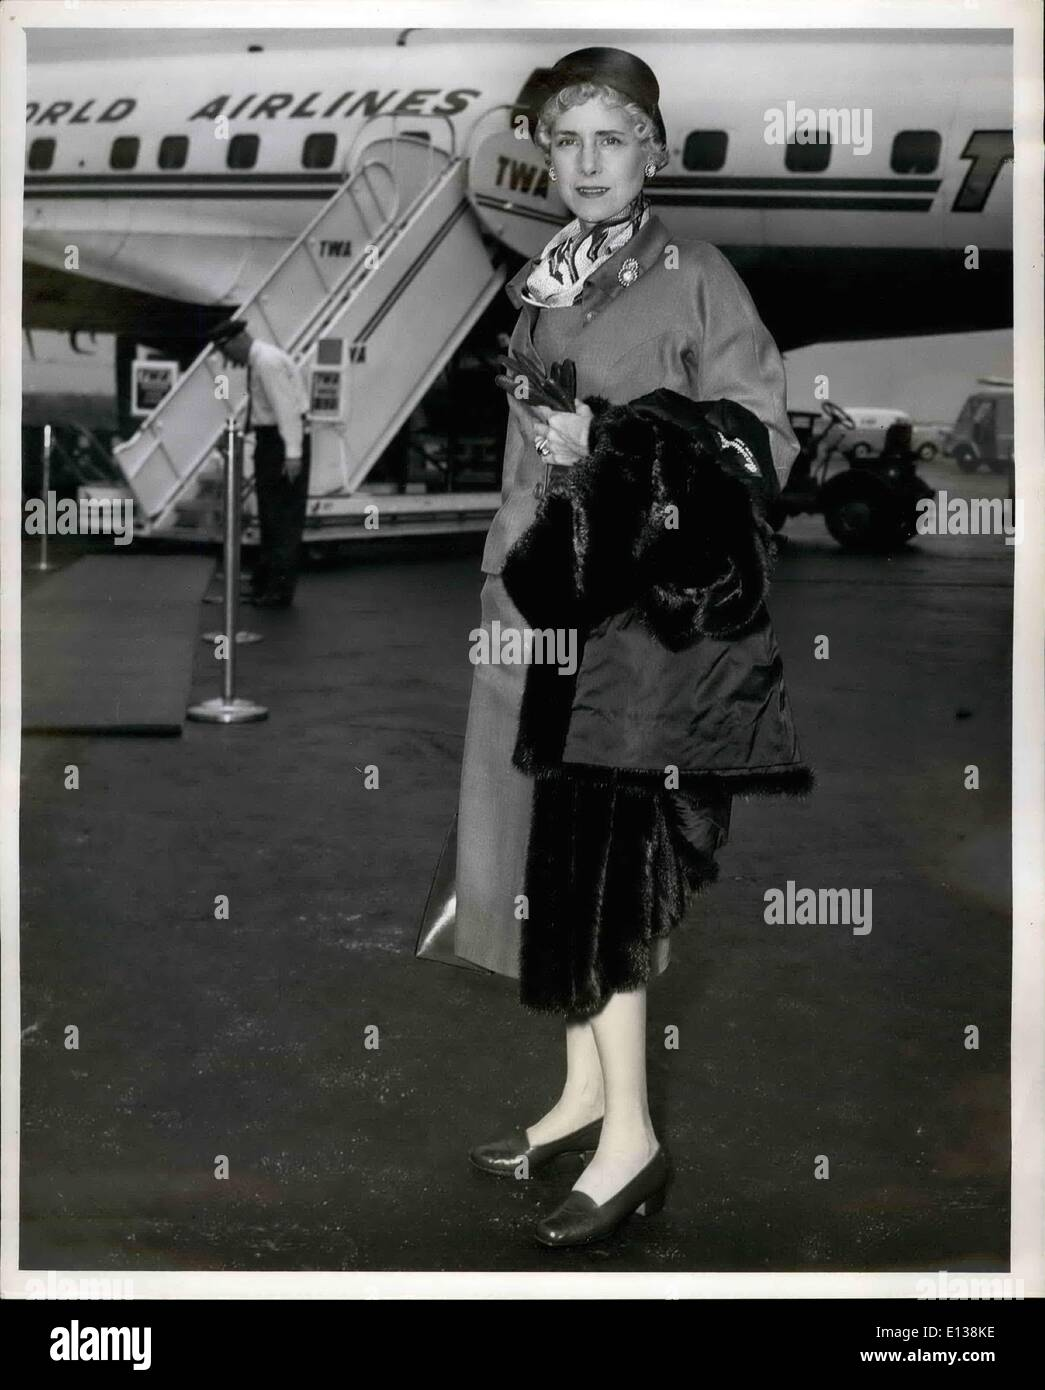 Feb. 29, 2012 - Idlewind Airport, N.Y., Sept. 9th. Clare Booth Luce, former U.S. Ambassador to Italy boards a TWA flight here today for Rome for a vacation. On September 19, she will represent Secretary of State Dulles at the dedication of the Berlin Congress Hall. - Stock Image